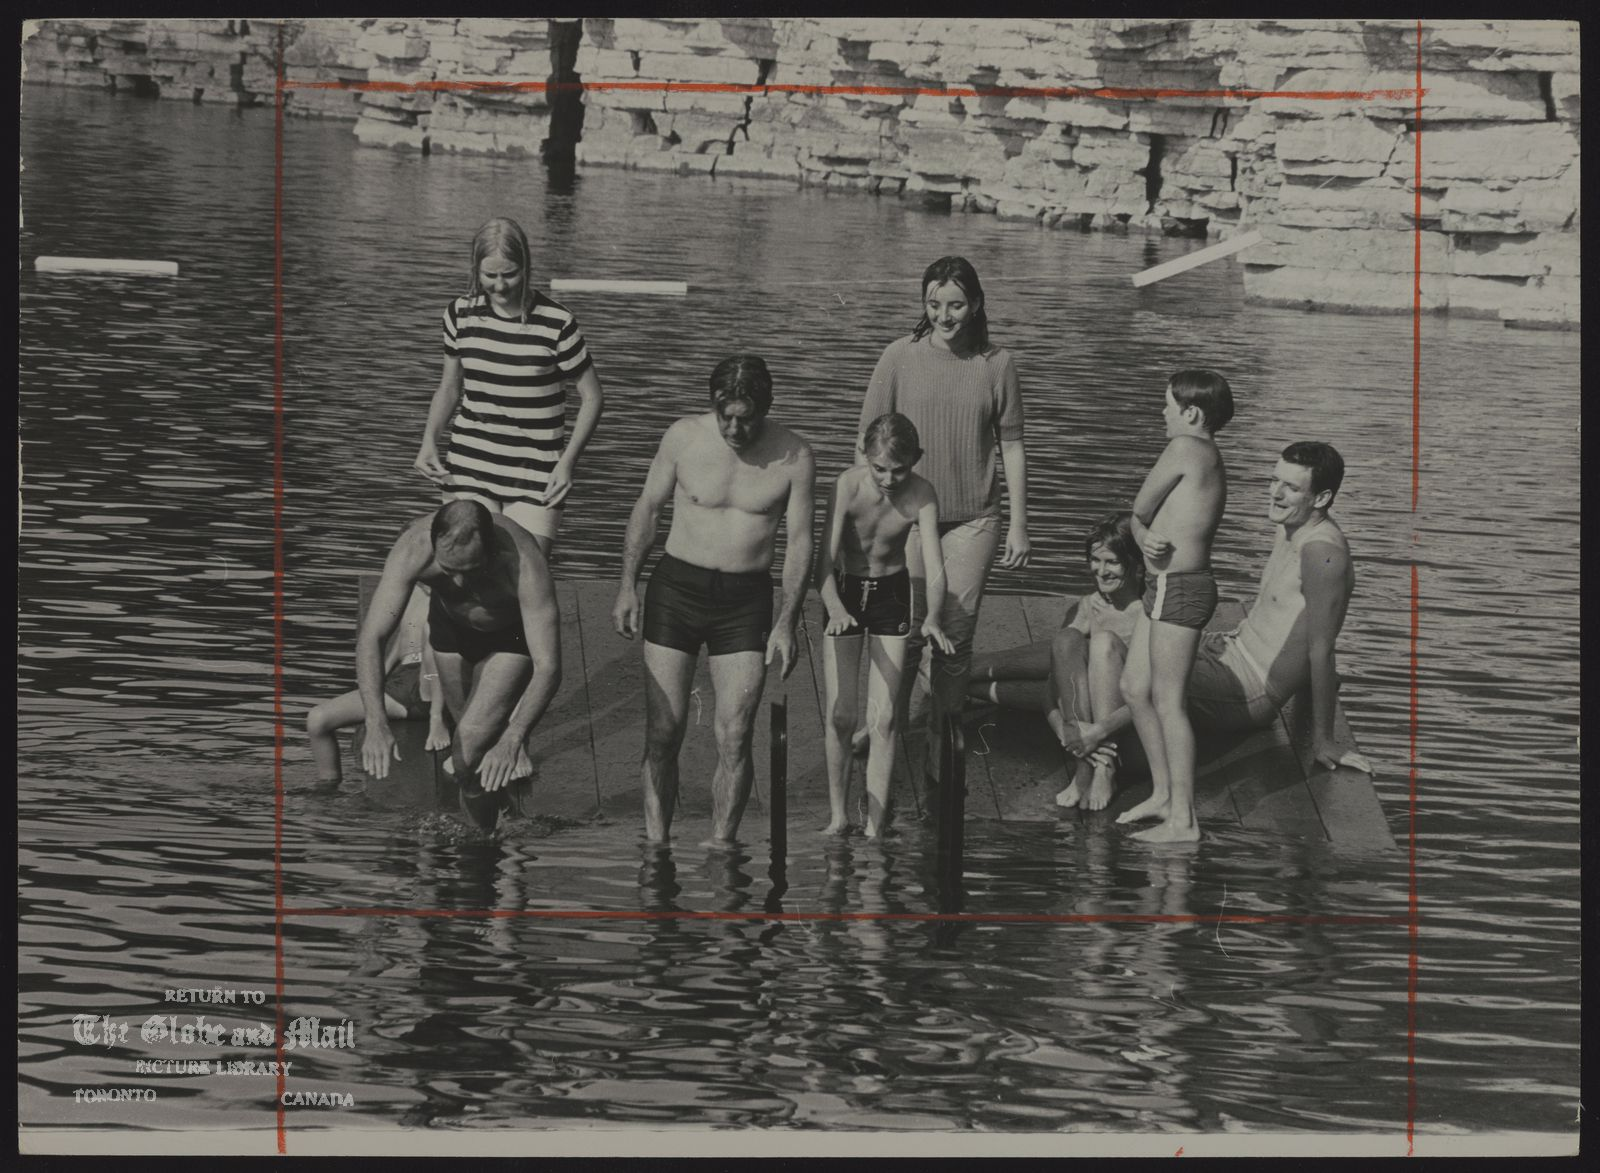 Pierre Elliott TRUDEAU Quebec. Politician St. Marys quarry near Stratford, Ontario. As the raft tips, so dives Prime Minister Trudeau (at left). Others on raft, including Forestry Development Minister Jean Marchand, young swimmers, and Globe and Mail reporter John Burns (right) looks on.